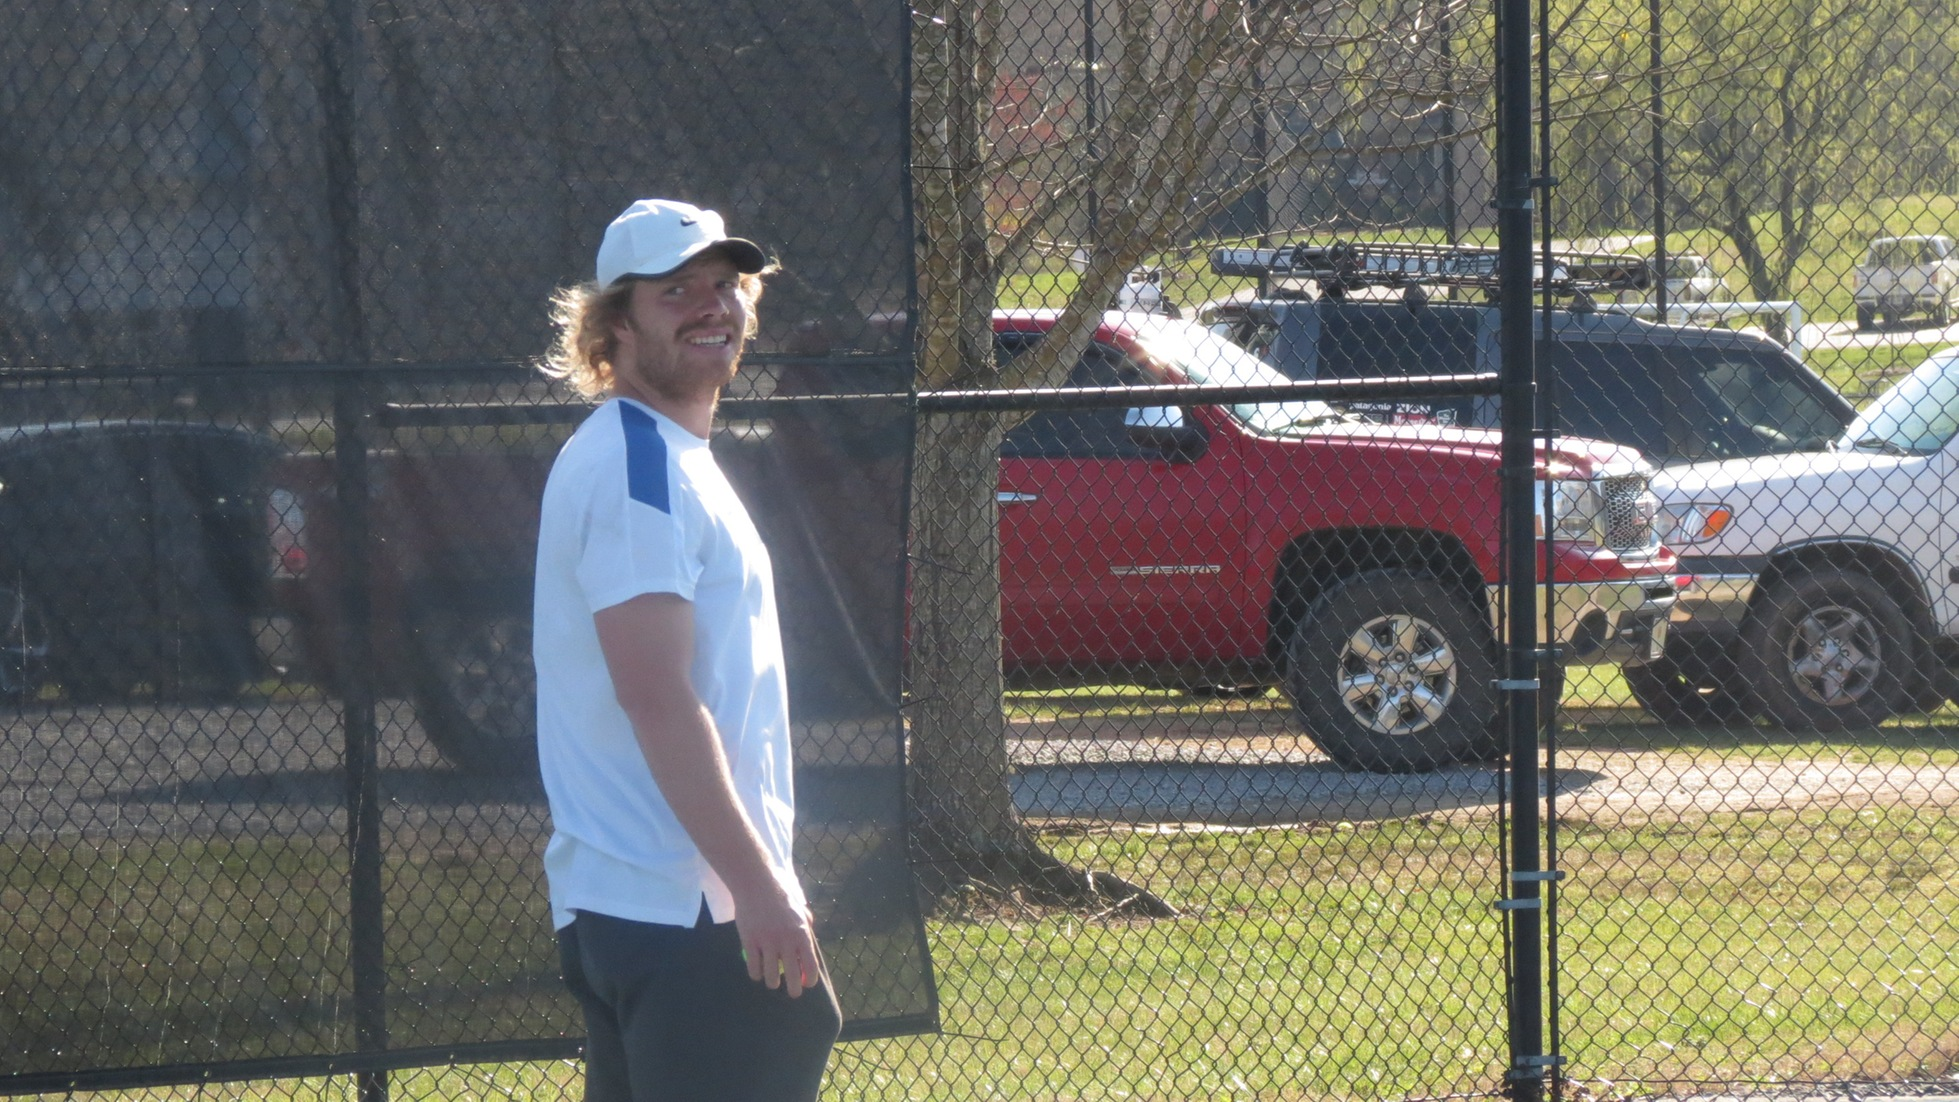 Tom Mittring Extends Singles Win Streak to 14 Matches in 6-3 Setback to Covenant